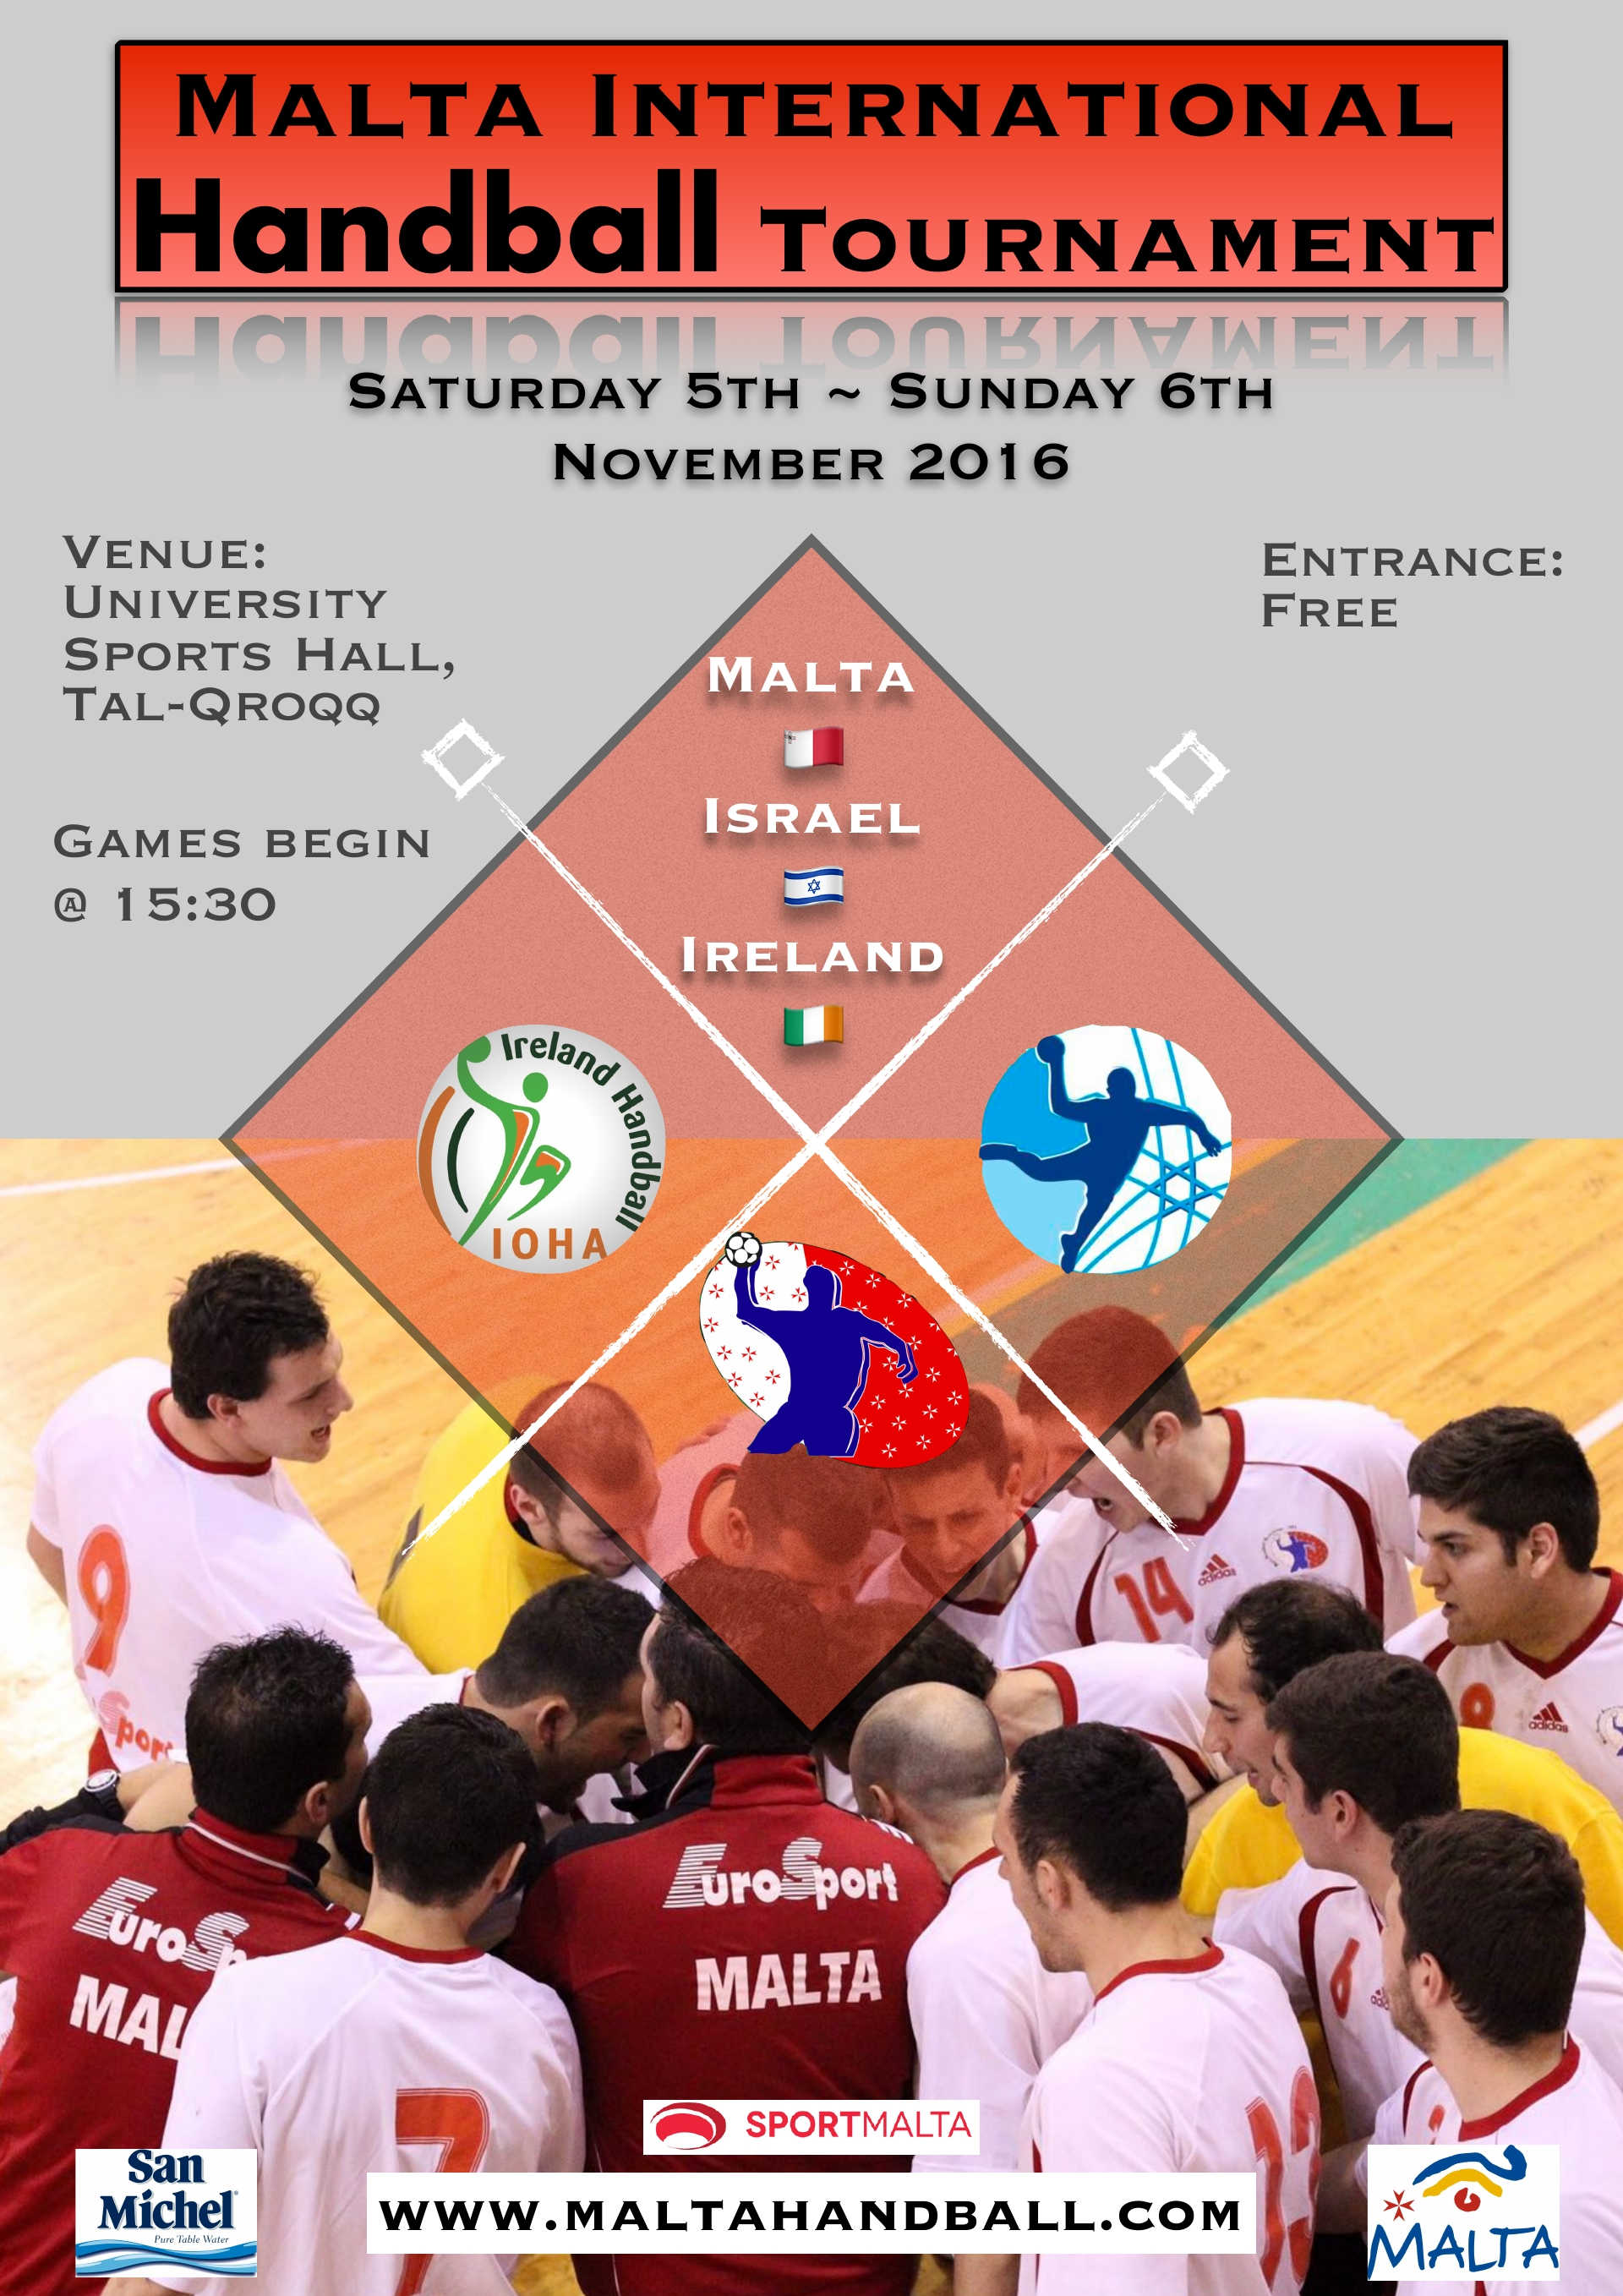 Malta International Handball Tournament @ University Sports Hall | Gzira | Malta